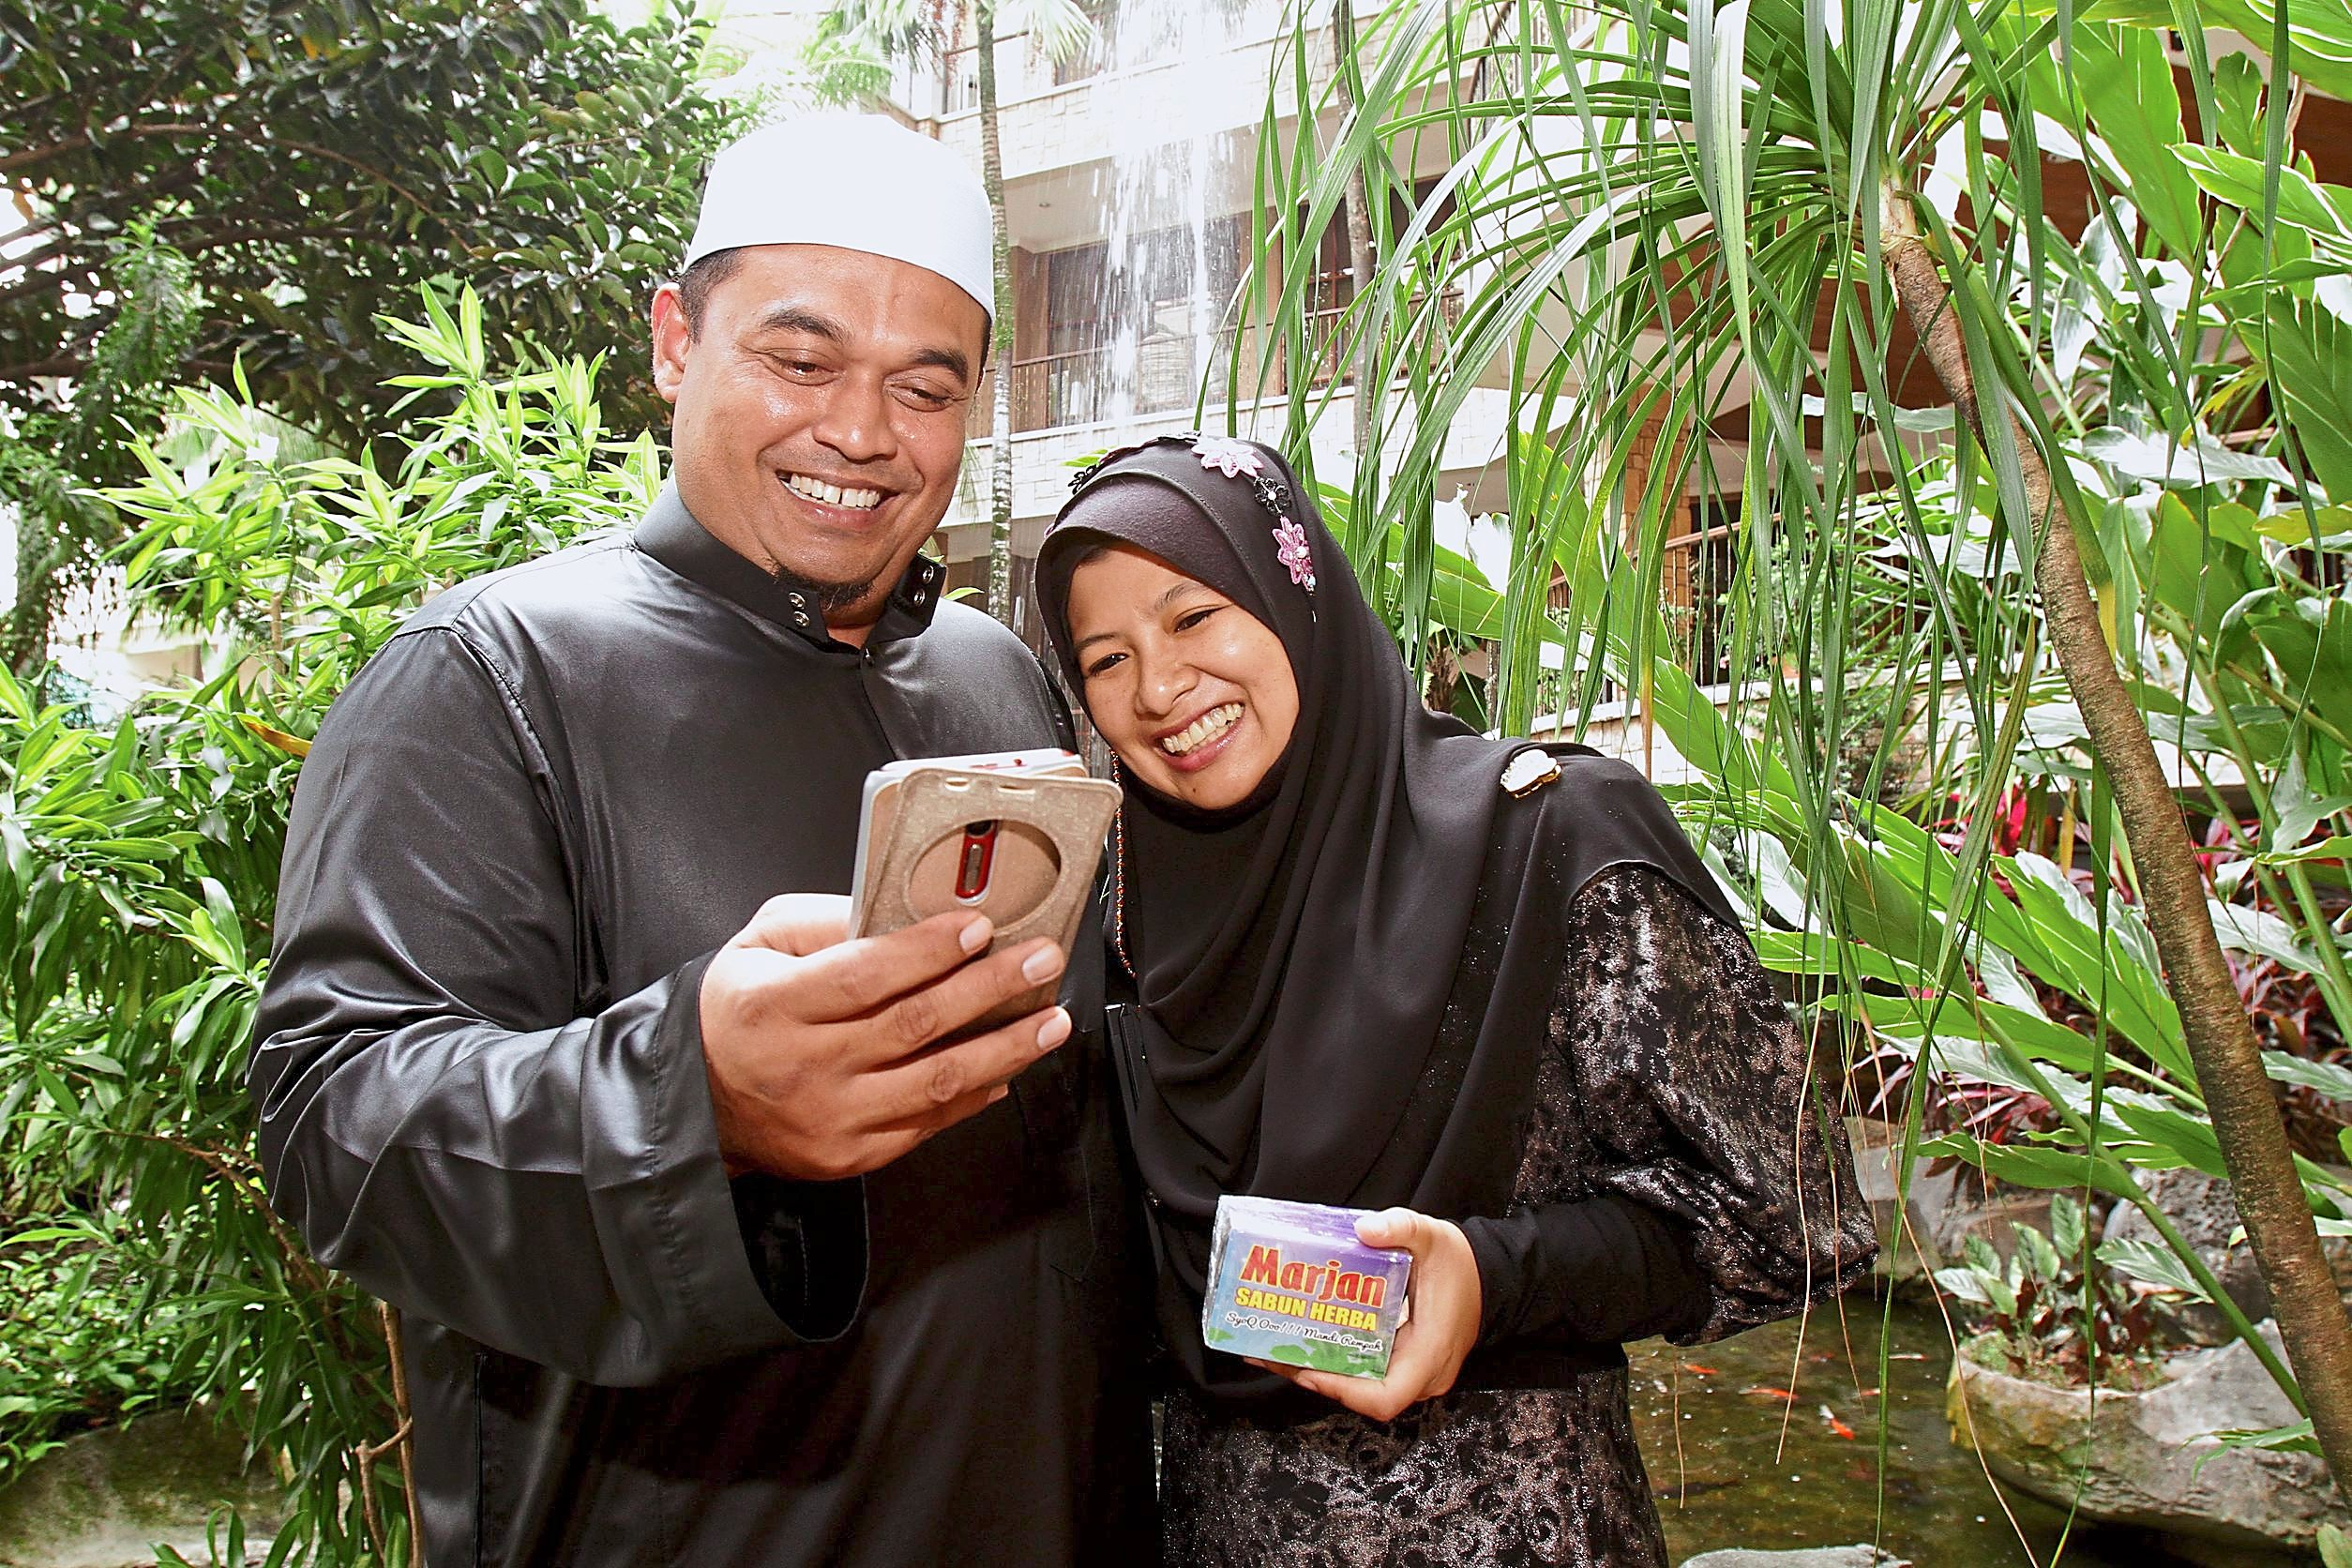 A THOUSAND RINGGIT A DAY: Mohamad Yusni, 39 and Marjan Rahman, 37, have increased the size of their herbal soup business in the past few months after setting up a Business Facebook Page.